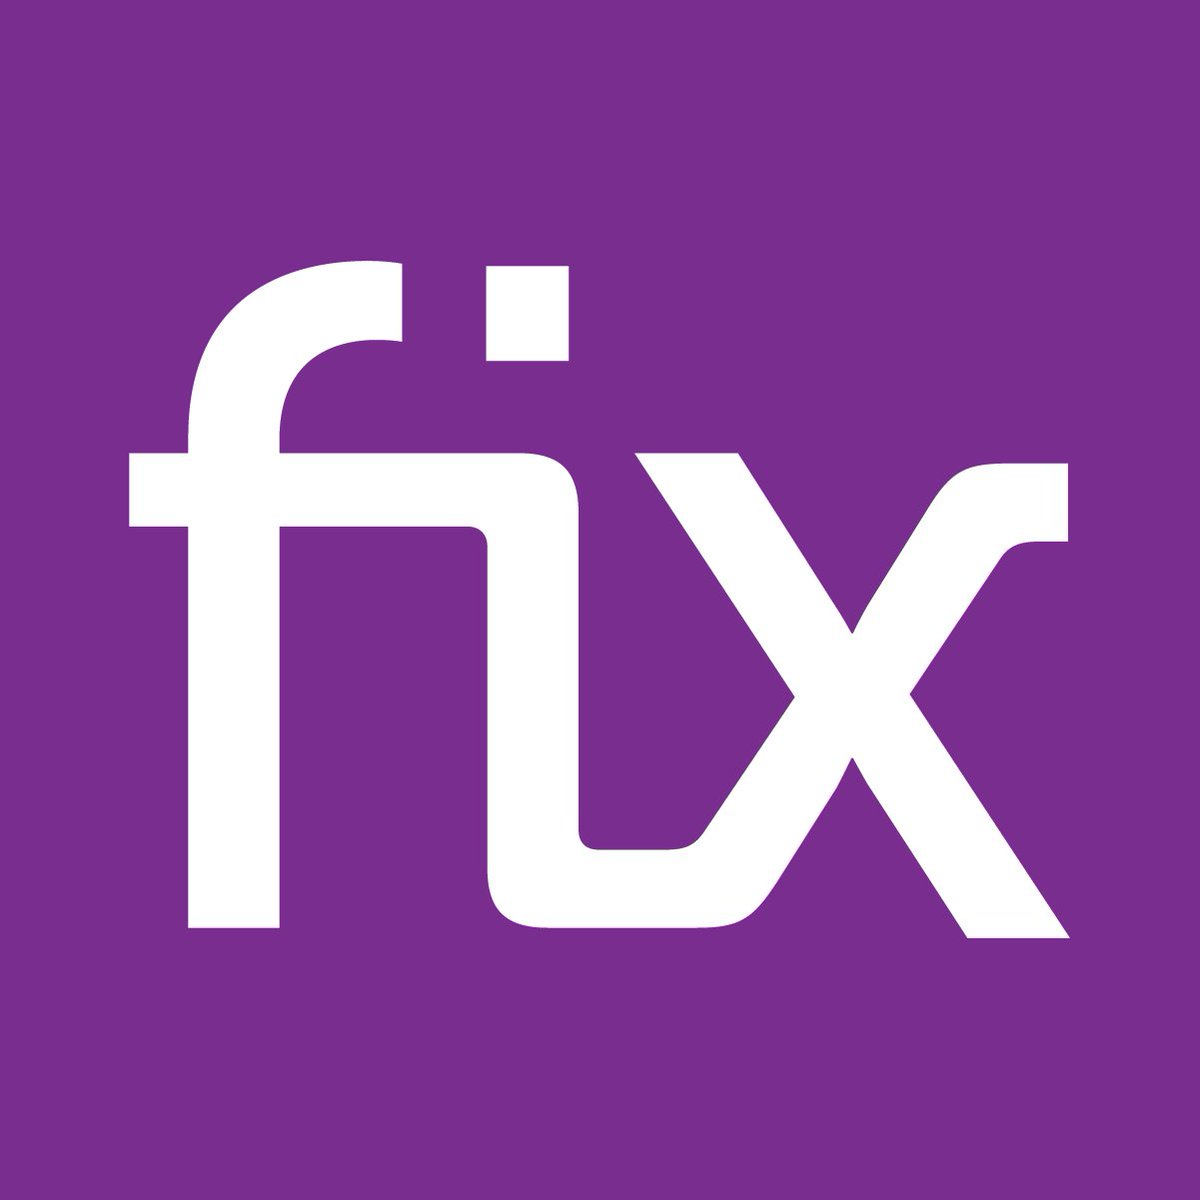 7 Days left to register for #FIX2017 at Early Bird Pricing. Only a few resident/APP spots left.  gonna be #amazing.  https:// feminem.org/events/fix2017/  &nbsp;  <br>http://pic.twitter.com/ll6Qb0BdQx